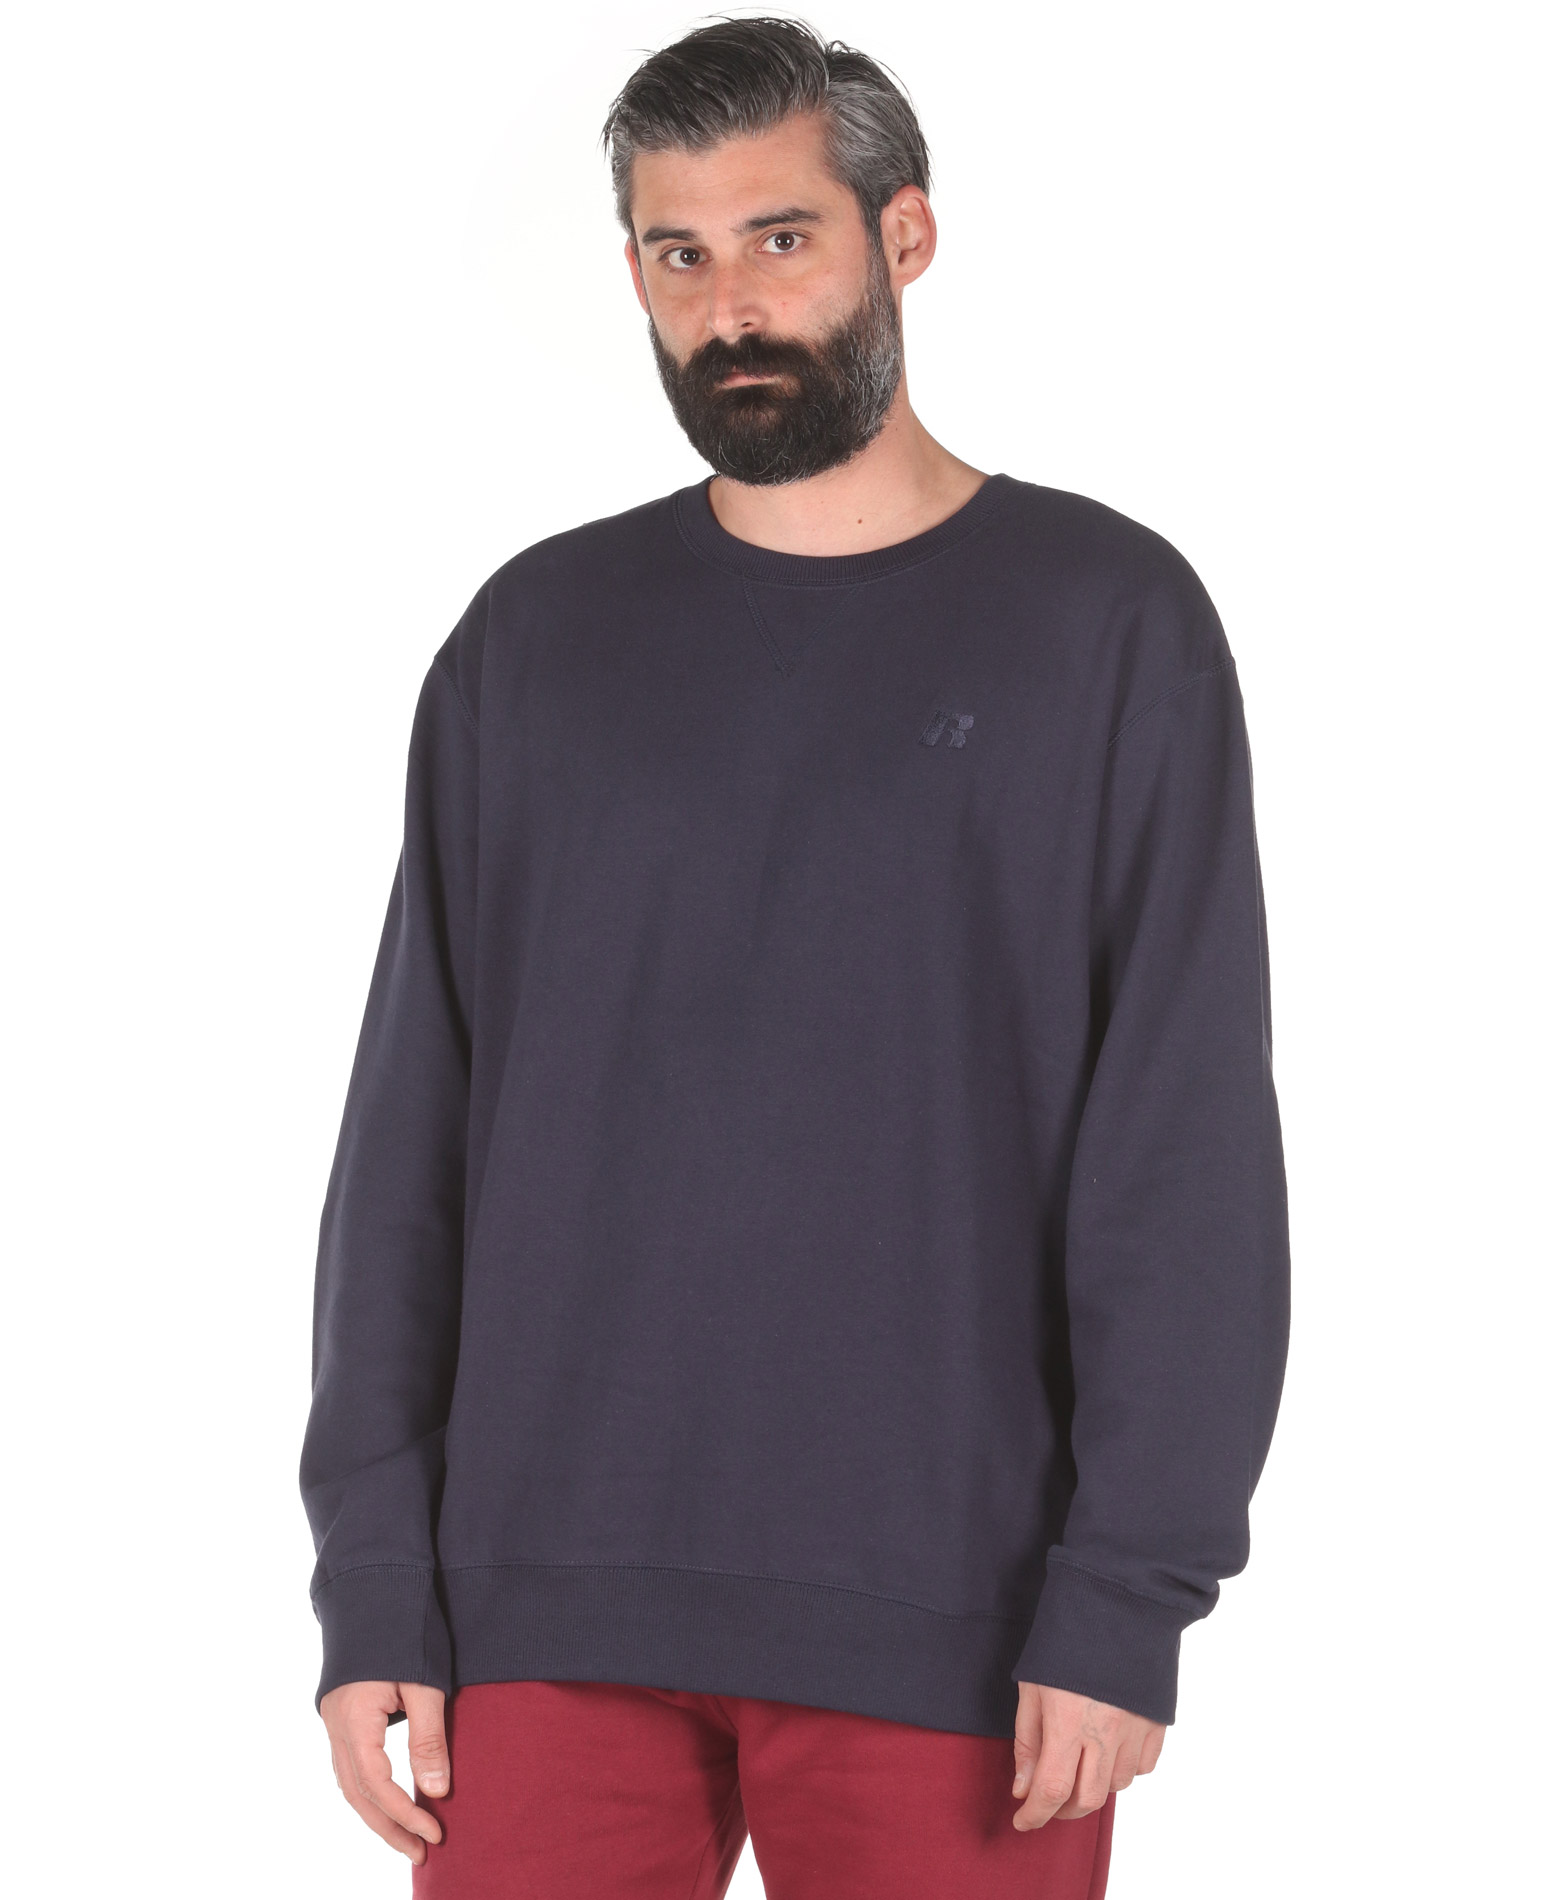 Russell Athletic CREWNECK SWEATSHIRT A0-003-2-190 Μπλε